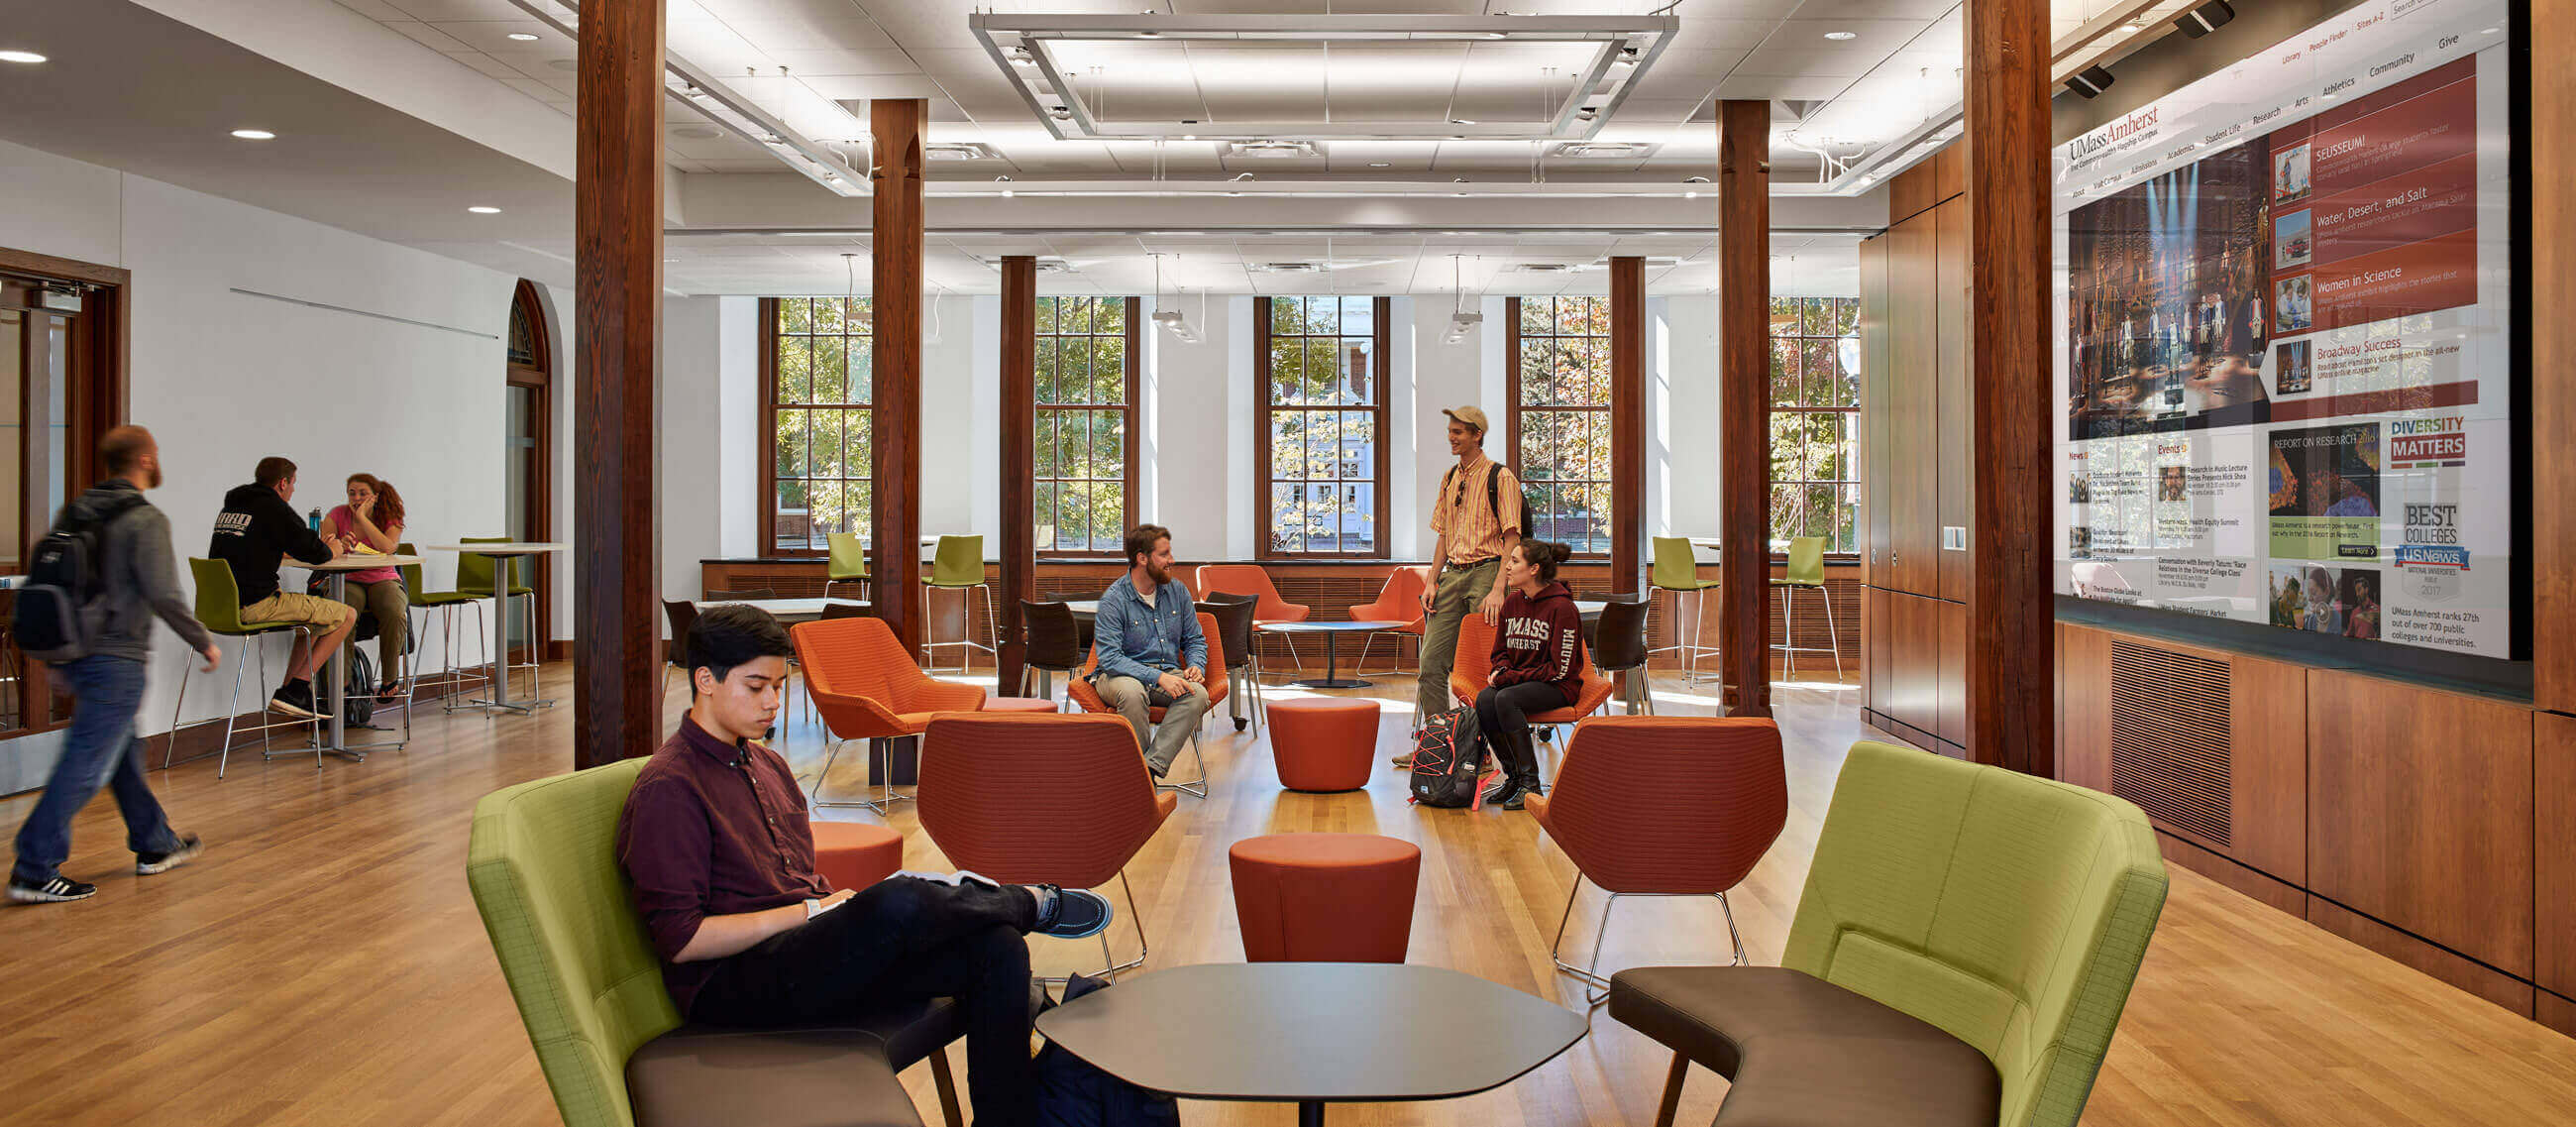 Students studying and socializing in lounge chairs and at tables in an open space with thin wooden columns and a large screen to the right.